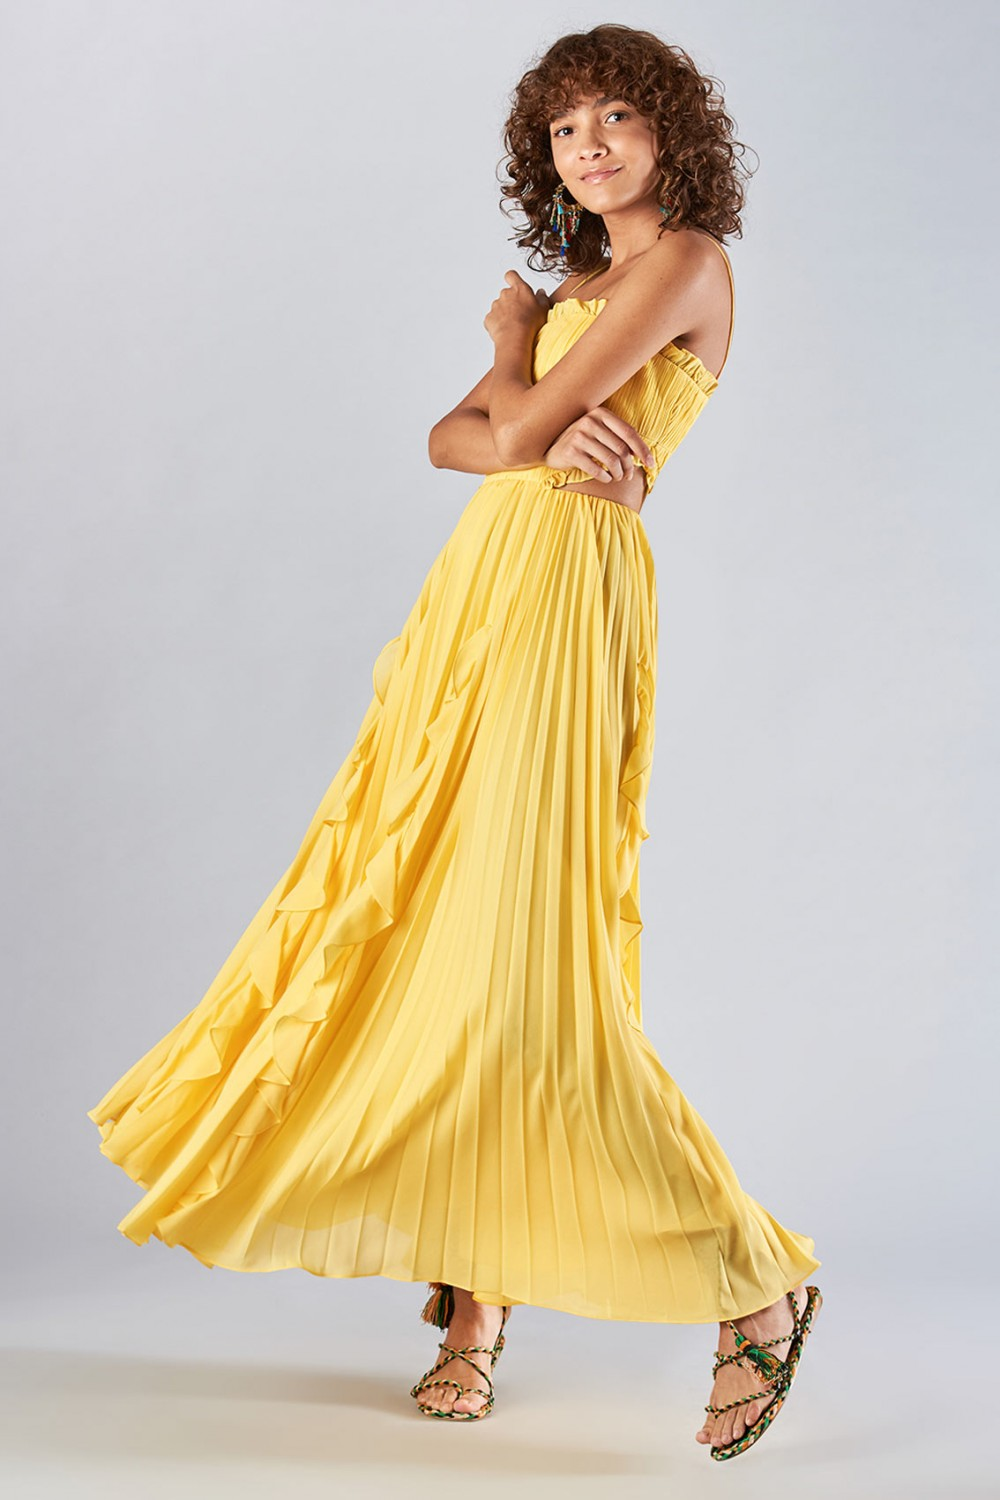 Yellow dress with side cuts